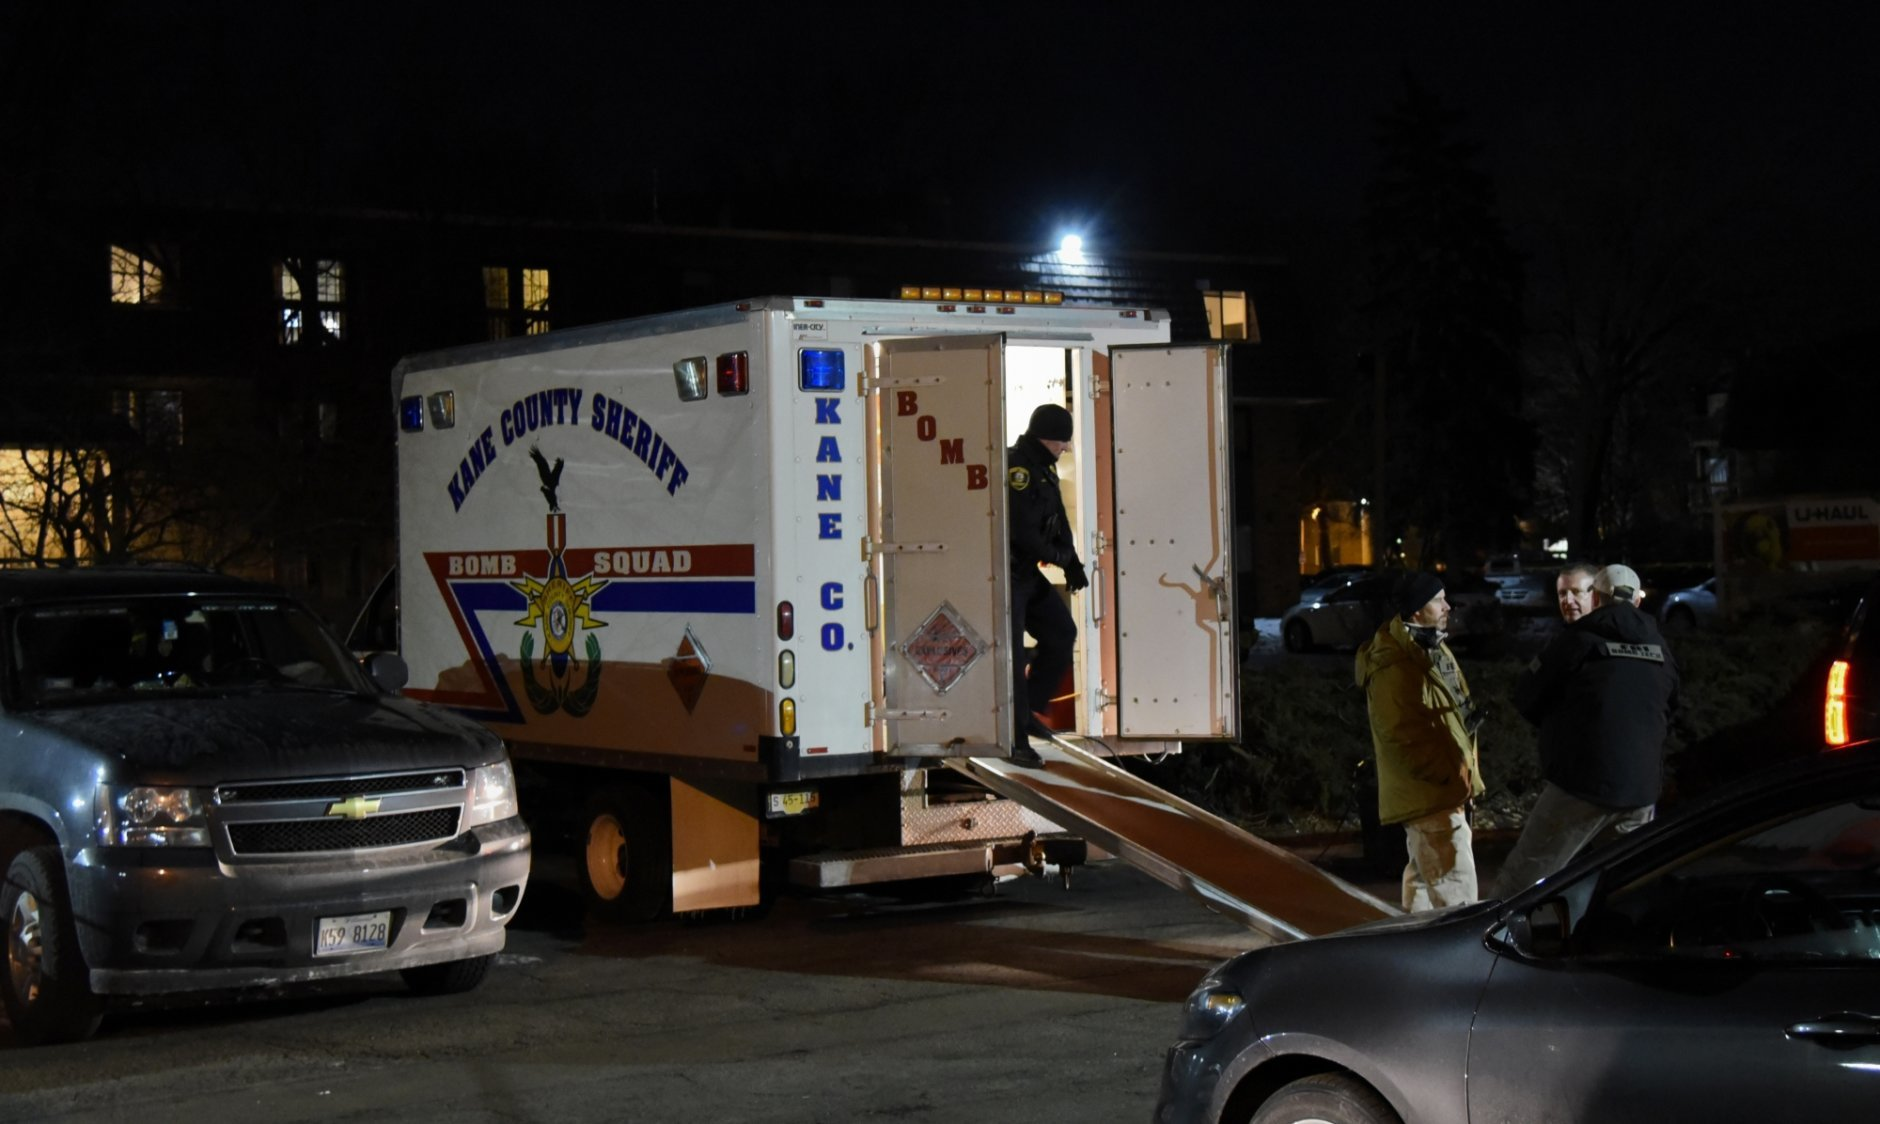 Investigators work at the apartment complex of the alleged shooter from the Henry Pratt Co. on Friday, Feb. 15, 2019, in Aurora, Ill. An employee of a manufacturing company opened fire in its suburban Chicago plant Friday, killing several people and wounding several police officers before he was fatally shot, police said. (AP Photo/Matt Marton)